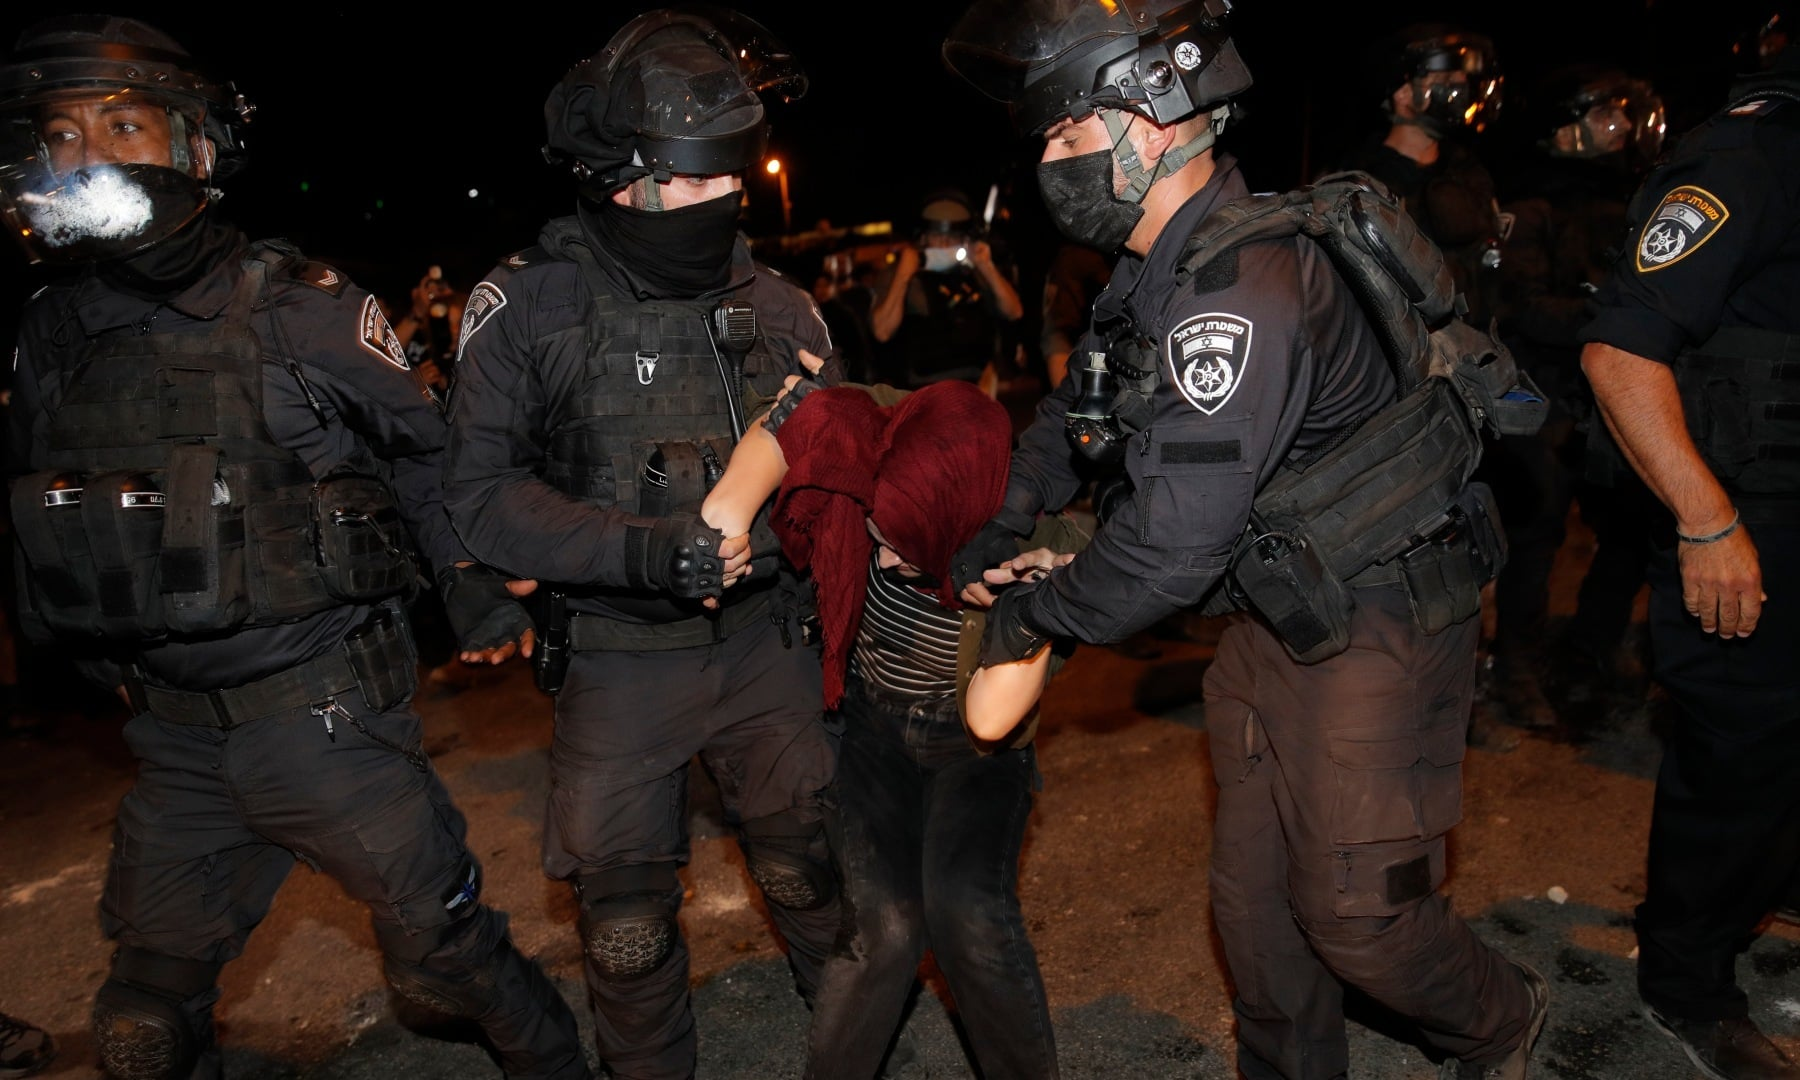 Israeli police officers detain a Palestinian demonstrator during a protest against the planned evictions of Palestinian families in the Sheikh Jarrah neighbourhood of east Jerusalem, Saturday, May 8. — AP